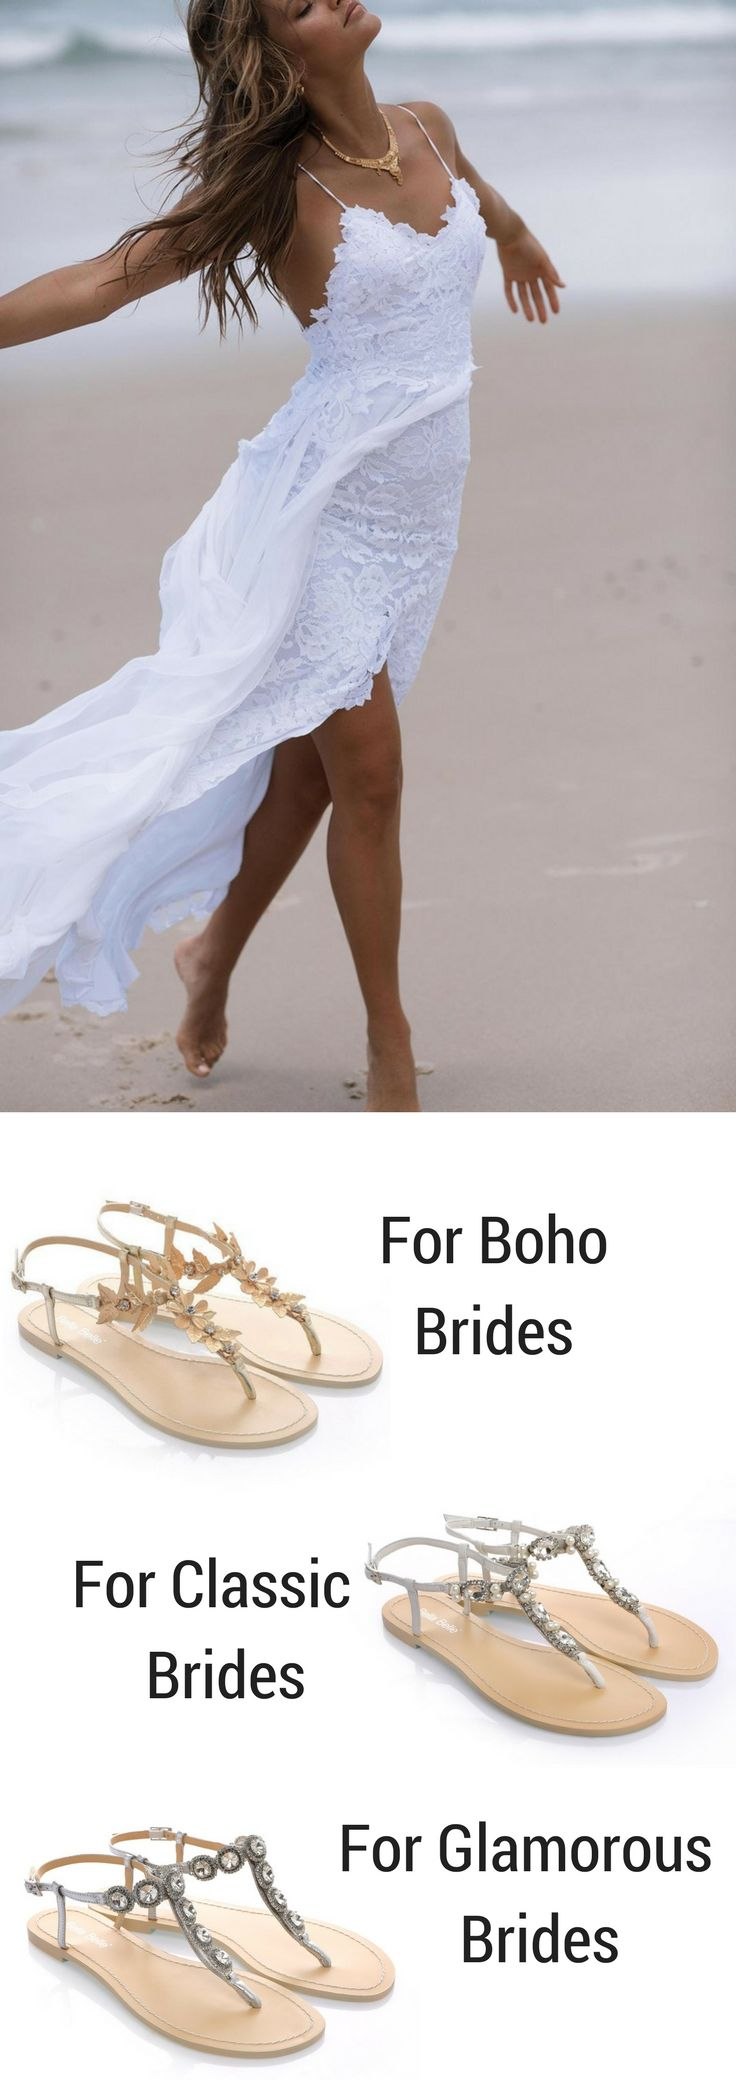 One Stunning Famous Dress Venue The Beach 3 Options For Ropriate Sandals Diffe Brides Wether You Are A Clic Boho